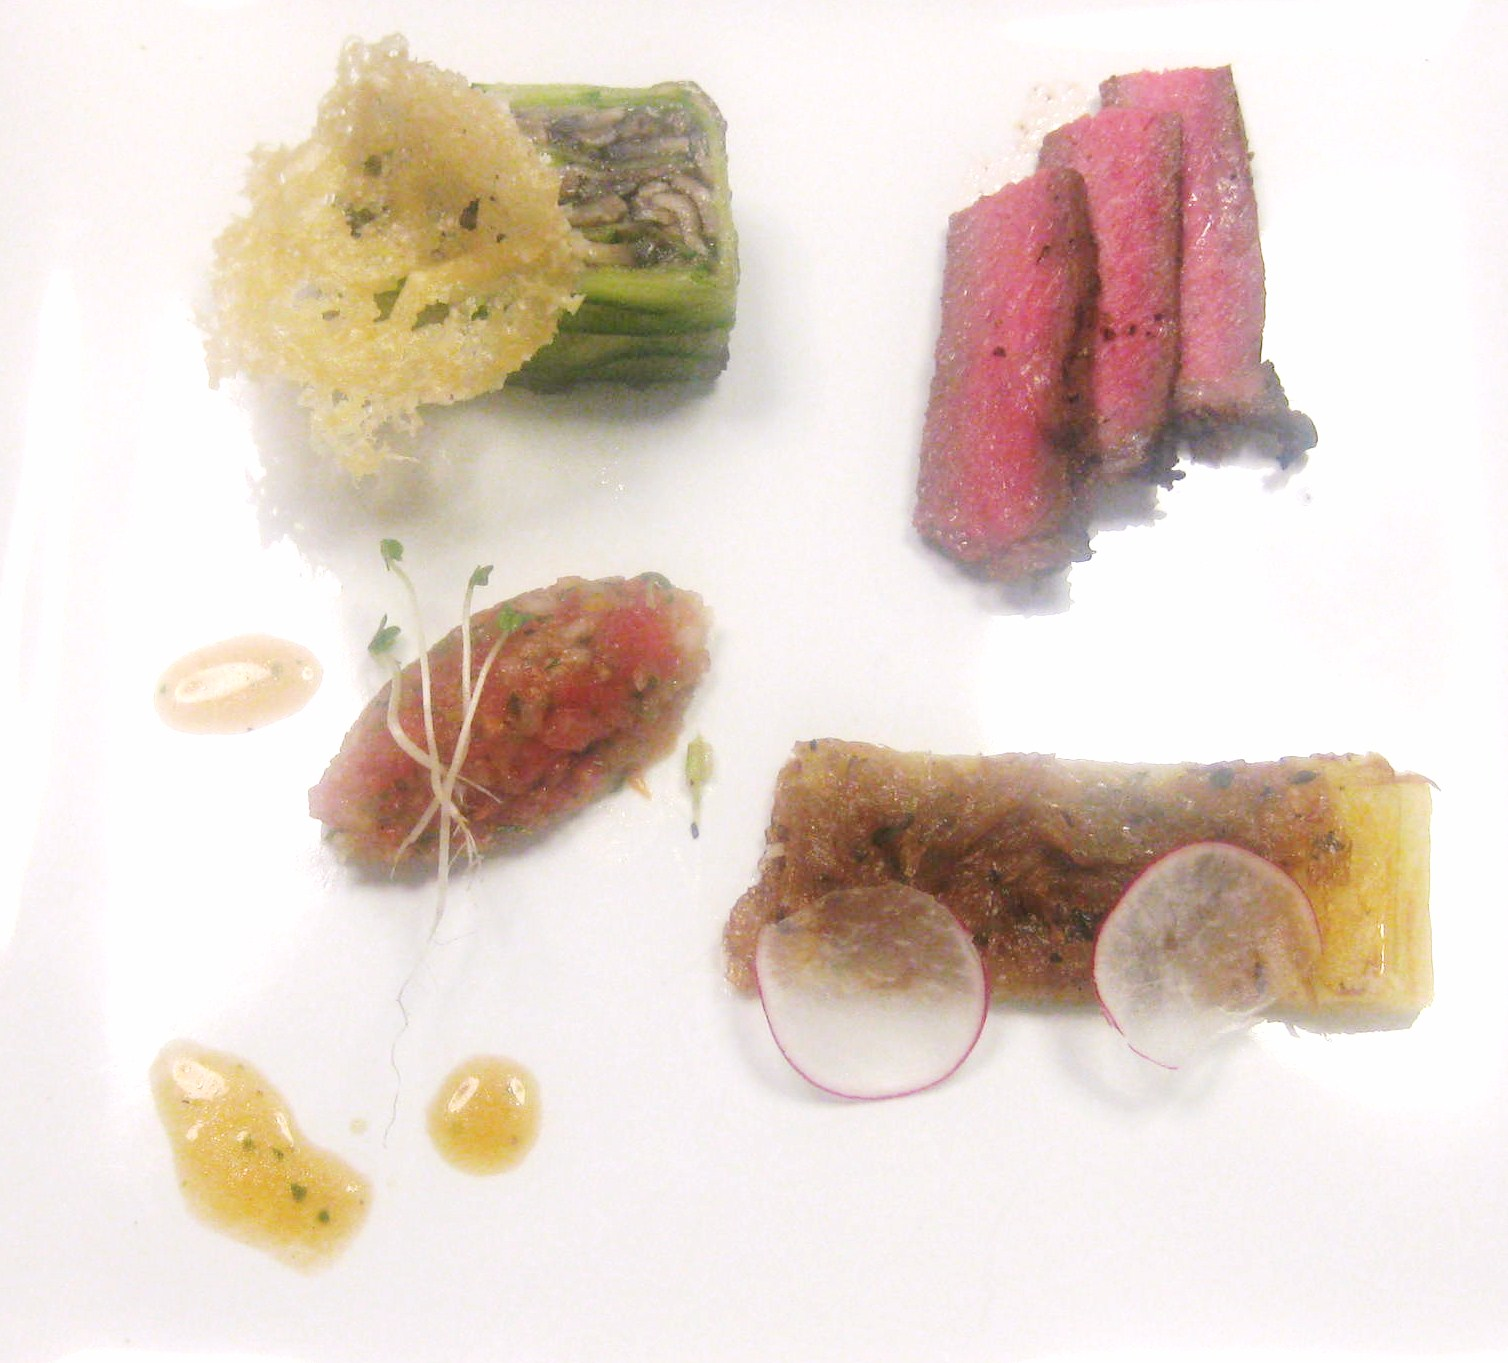 Deconstructed Beef Wellington